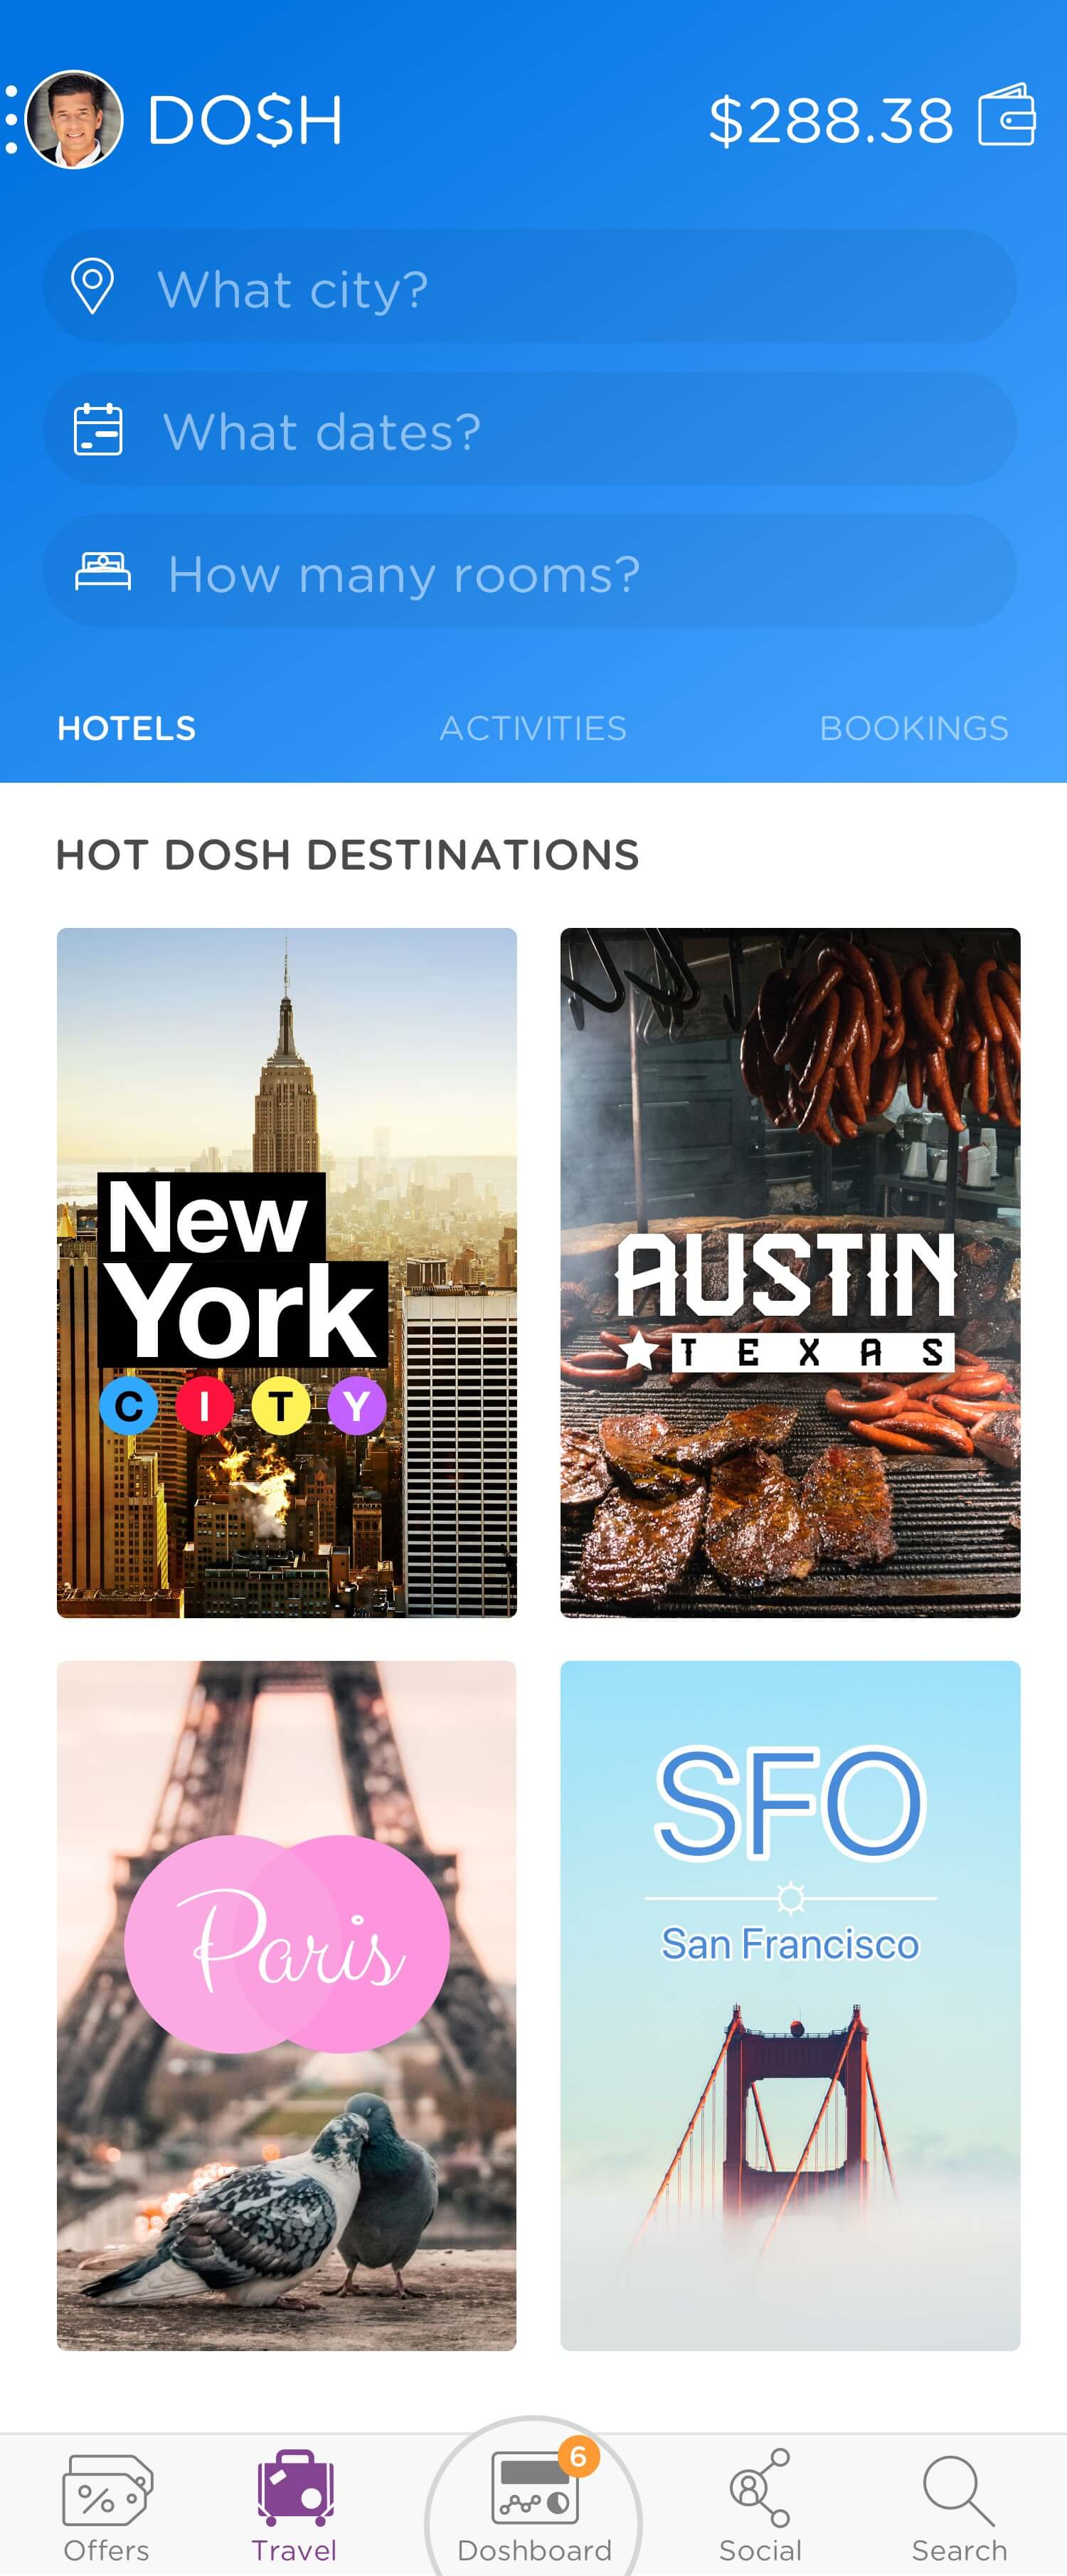 DOSH app Travel: Showing edit mode for destination, date and rooms Rocksauce Studios